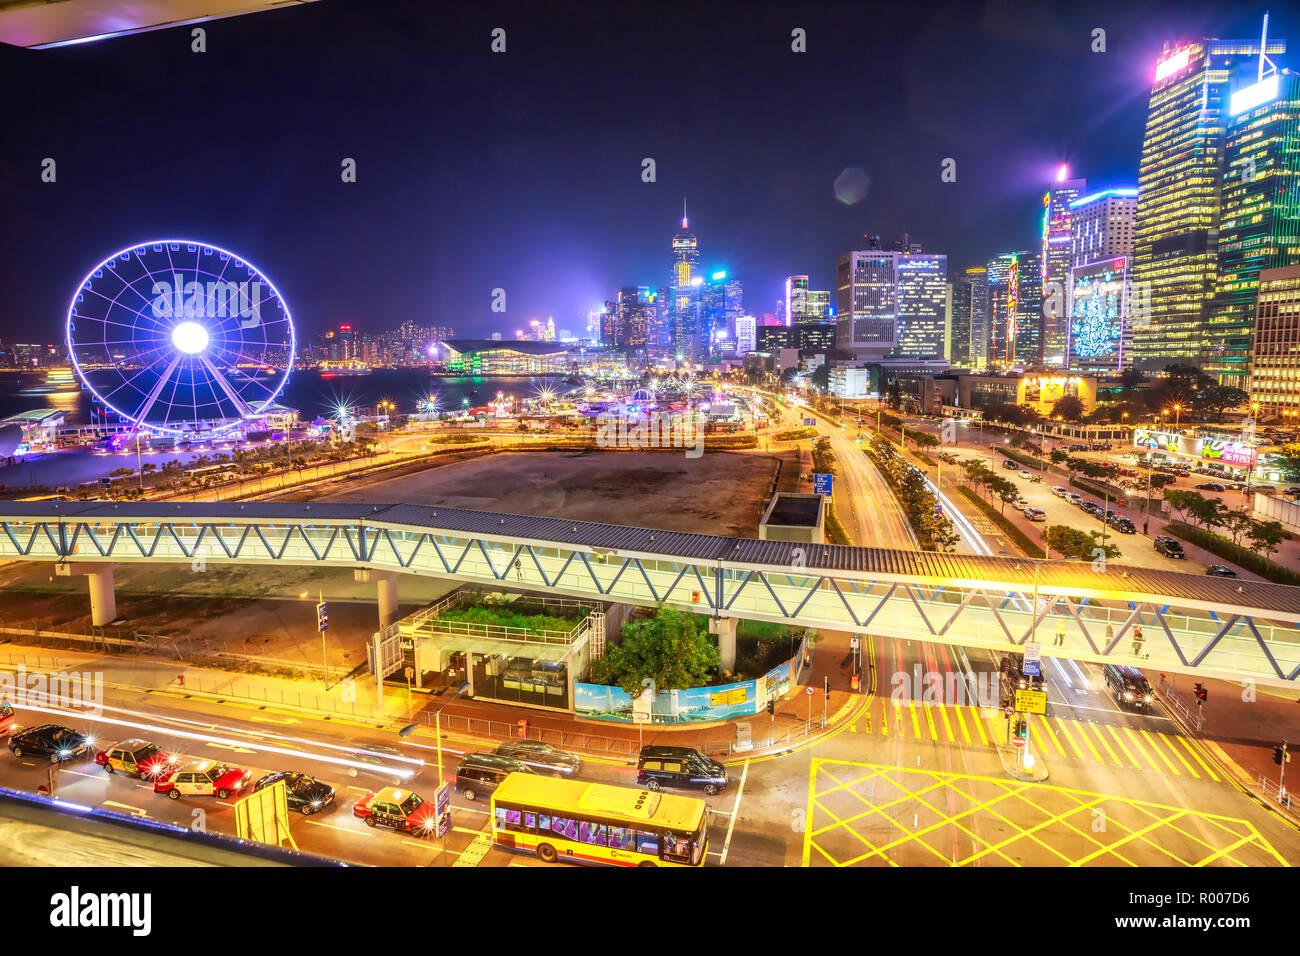 Hong Kong, China - Jannuary 23, 2017: Scenic aerial view of cityscape in Hong Kong, Central District, with Observation Ferris Wheel at Victoria Harbour illuminated at night. Urban night city for asian traveler destination. - Stock Image